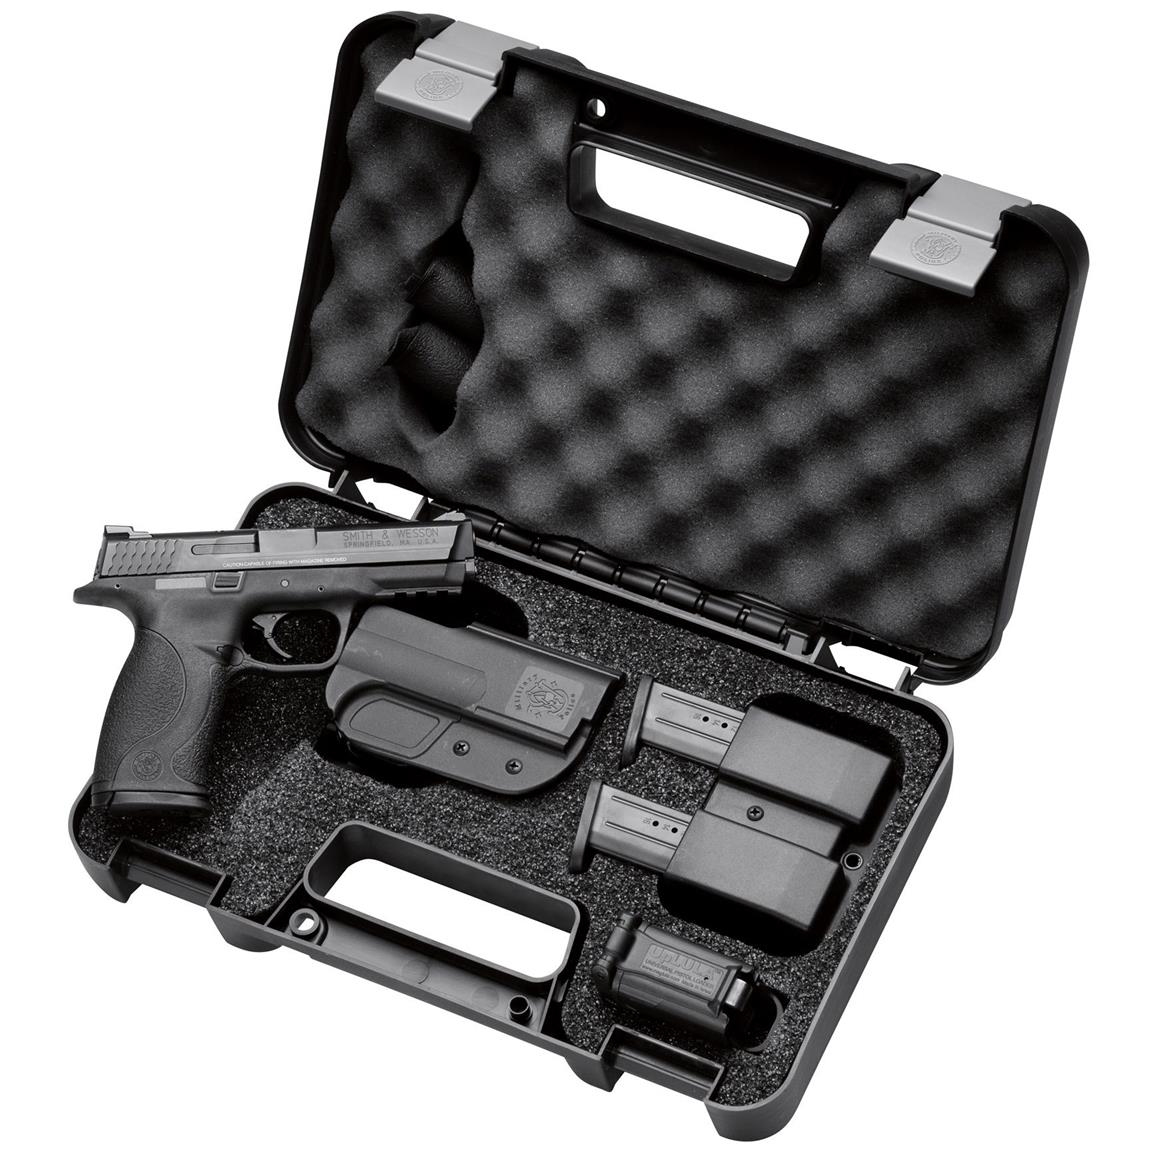 "Smith &anp; Wesson, M&P40 Carry / Range Kit, Semi-Automatic, .40 S&W, 4.25"" Barrel, 15+1 Rounds"